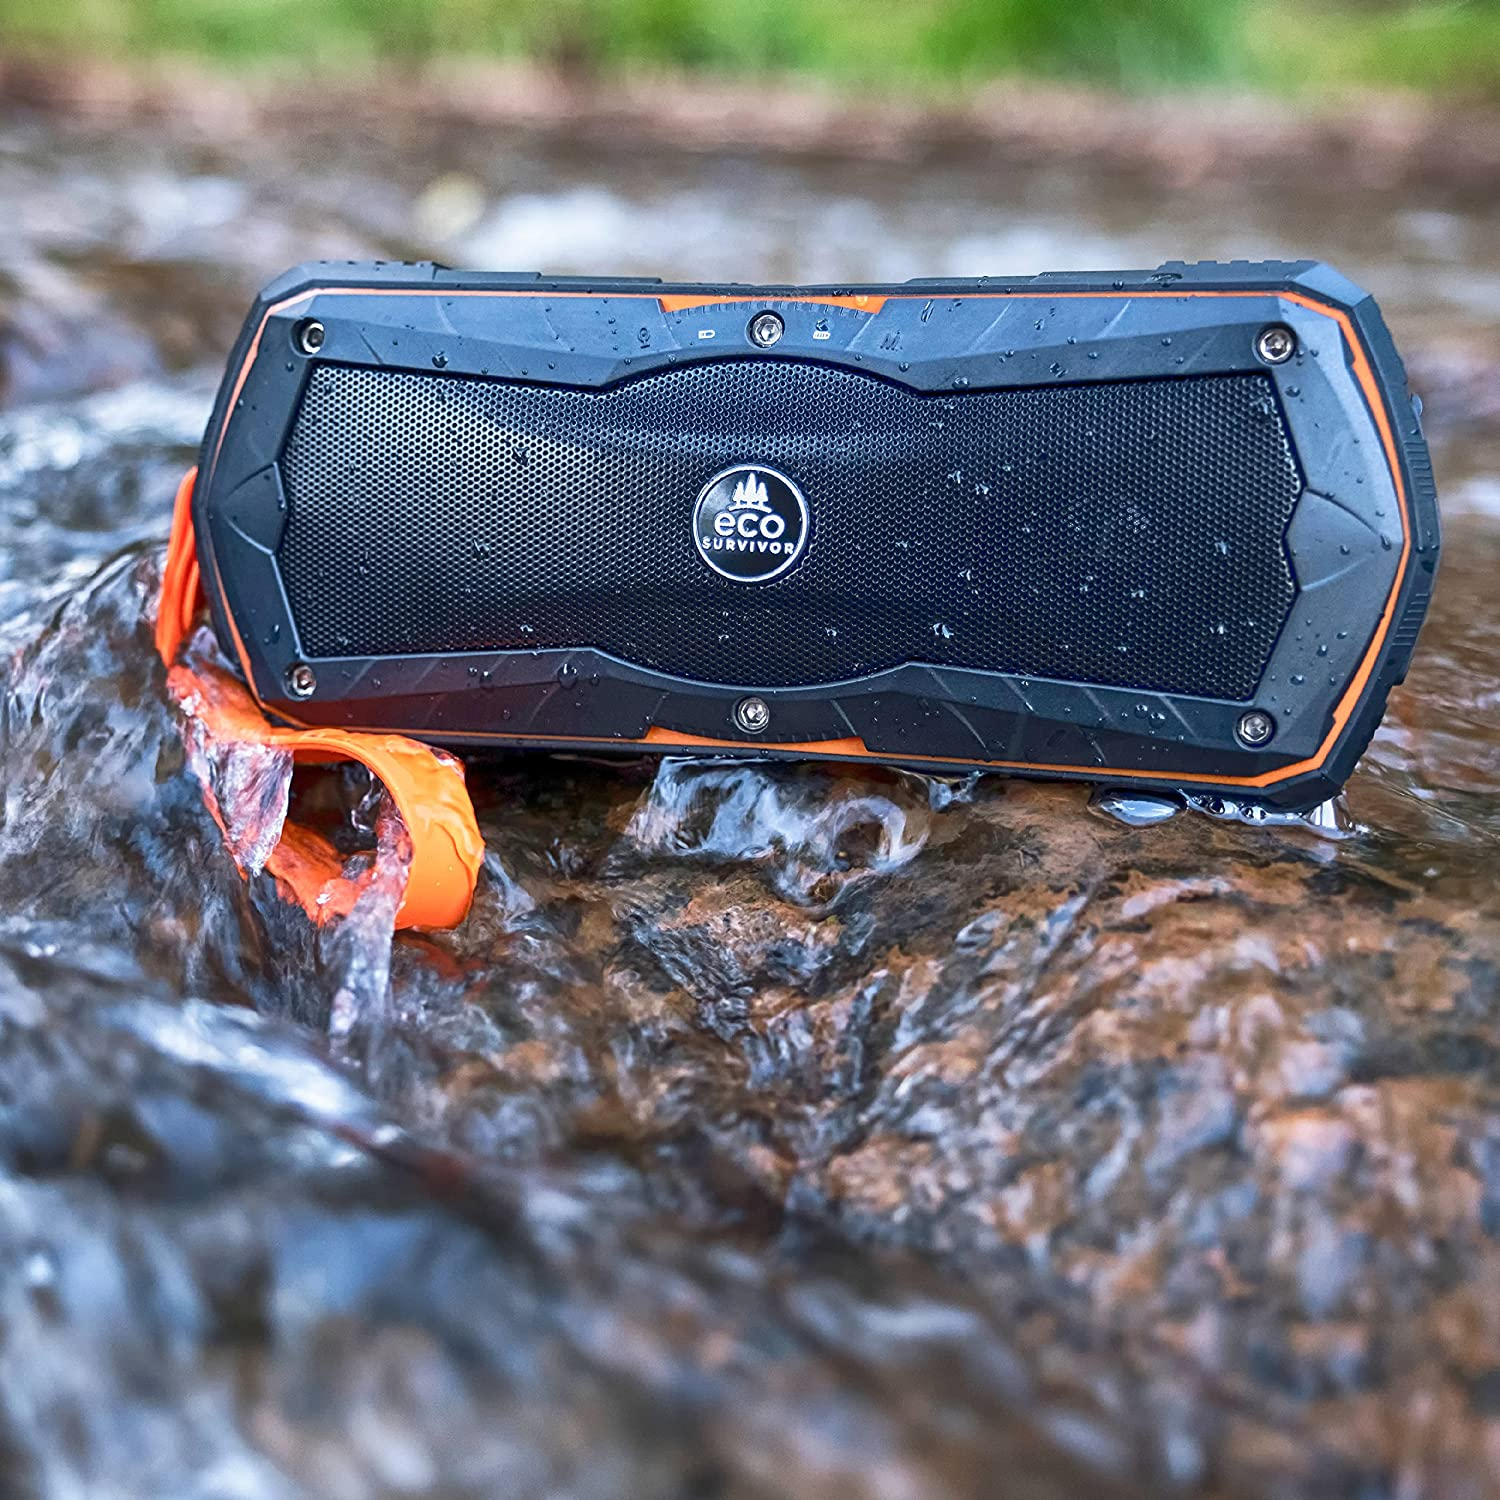 USB Portable Charger EcoSurvivor Outdoor Bluetooth Speaker Samsung Wireless Speaker for iPhone 34425 and More Water Resistant 50/% Charity Giveback Battery Pack